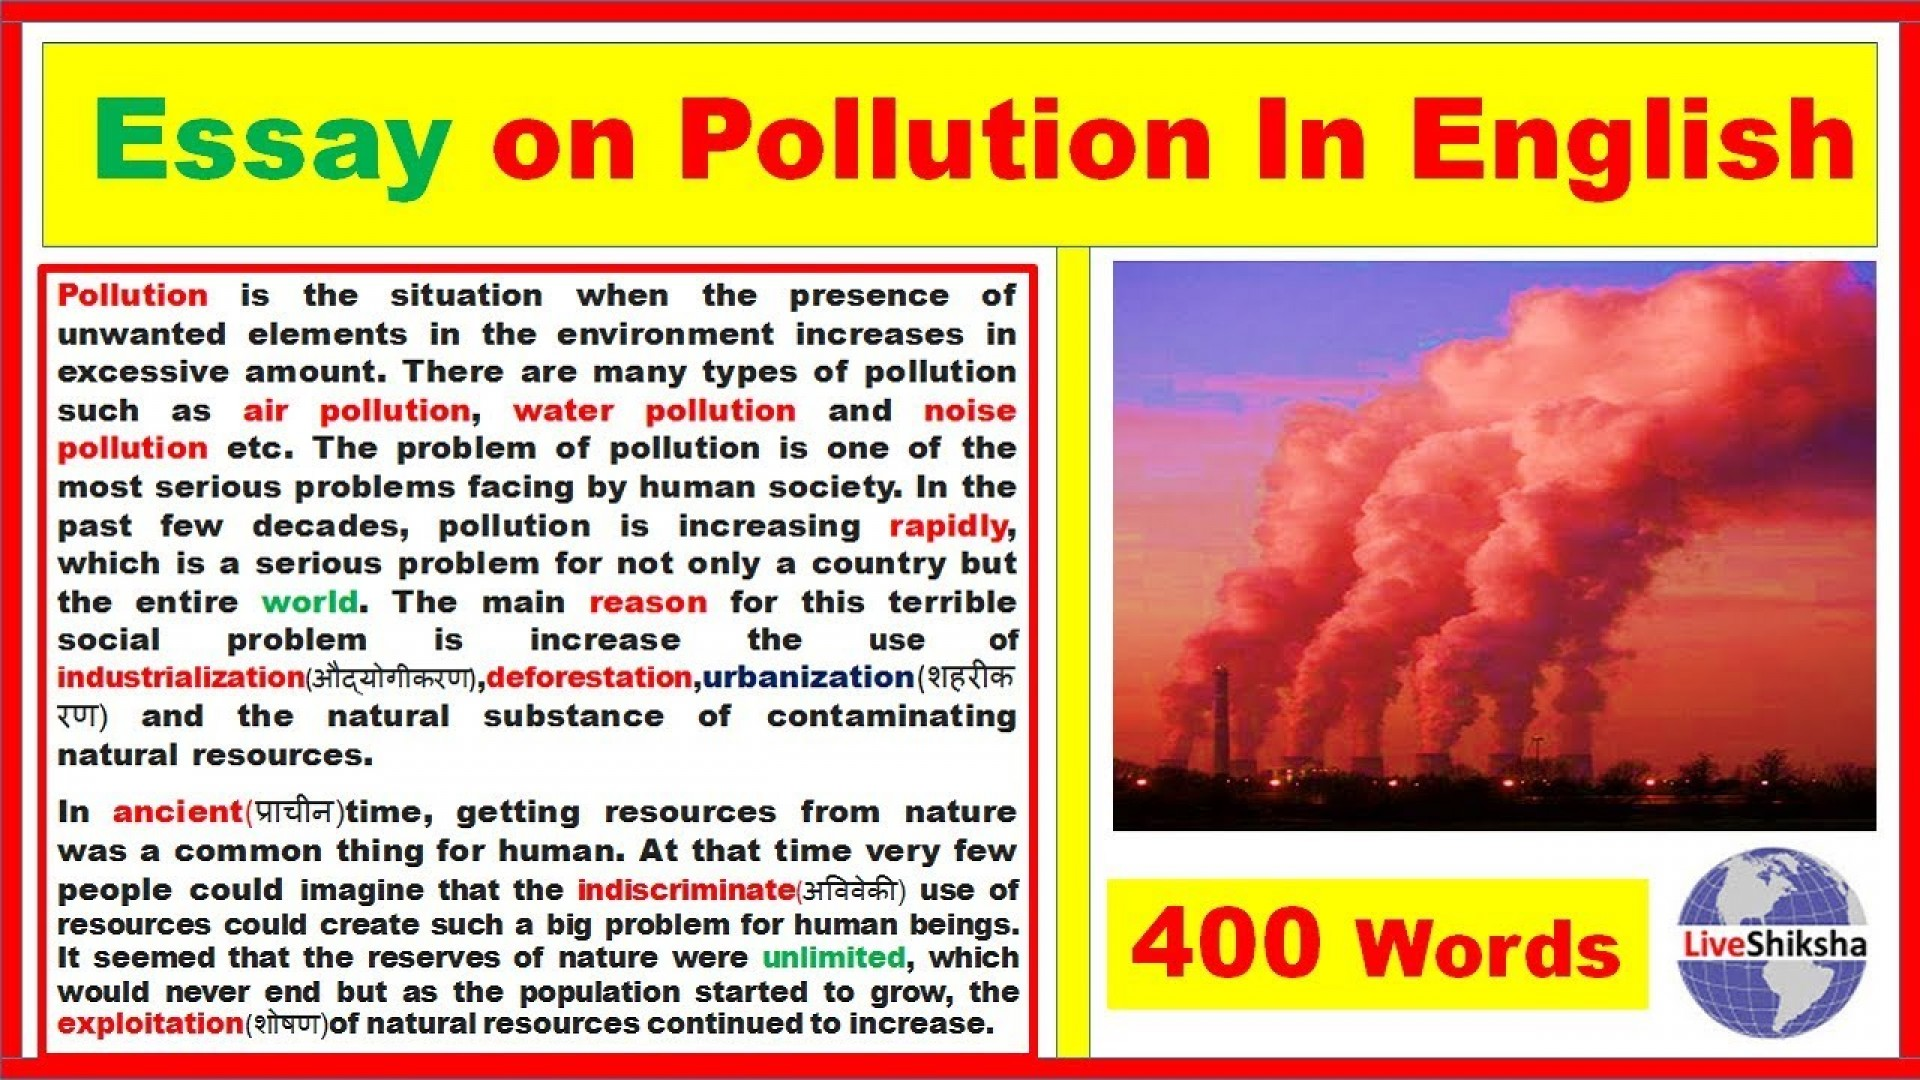 002 Pollution Essay Maxresdefault Remarkable Thesis Statement Air In English 1000 Words 1920